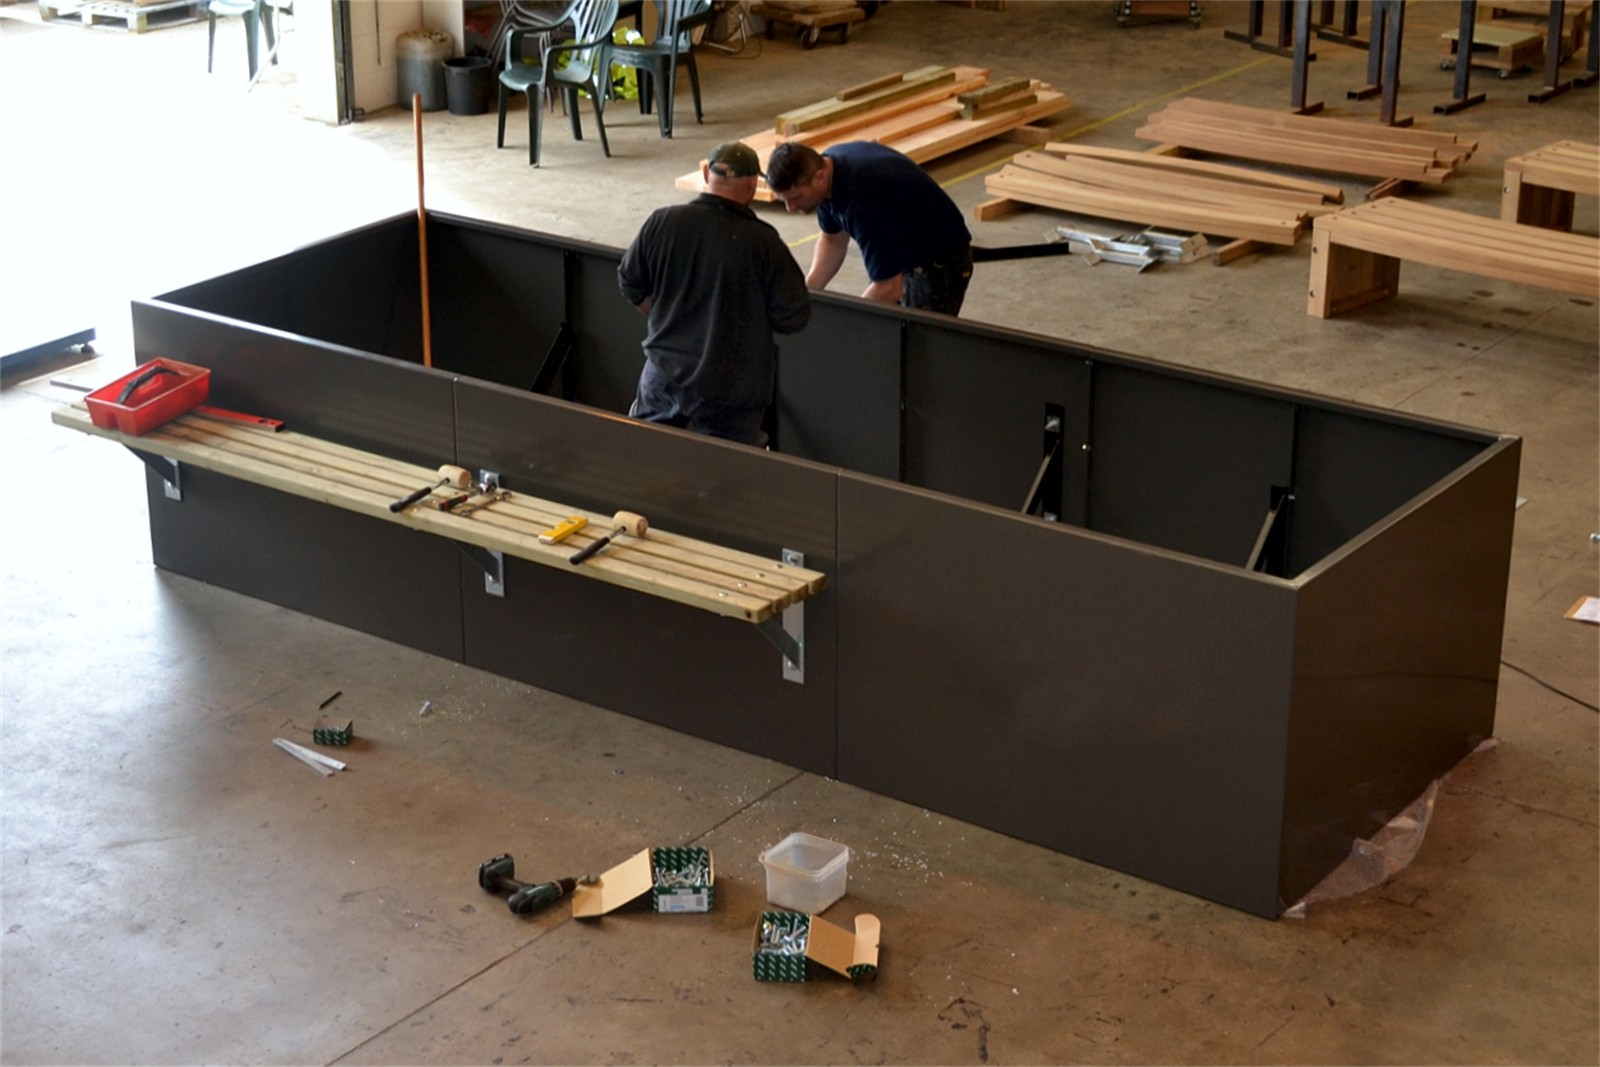 c121v02 - Stratum planter walling with bench in manufacture